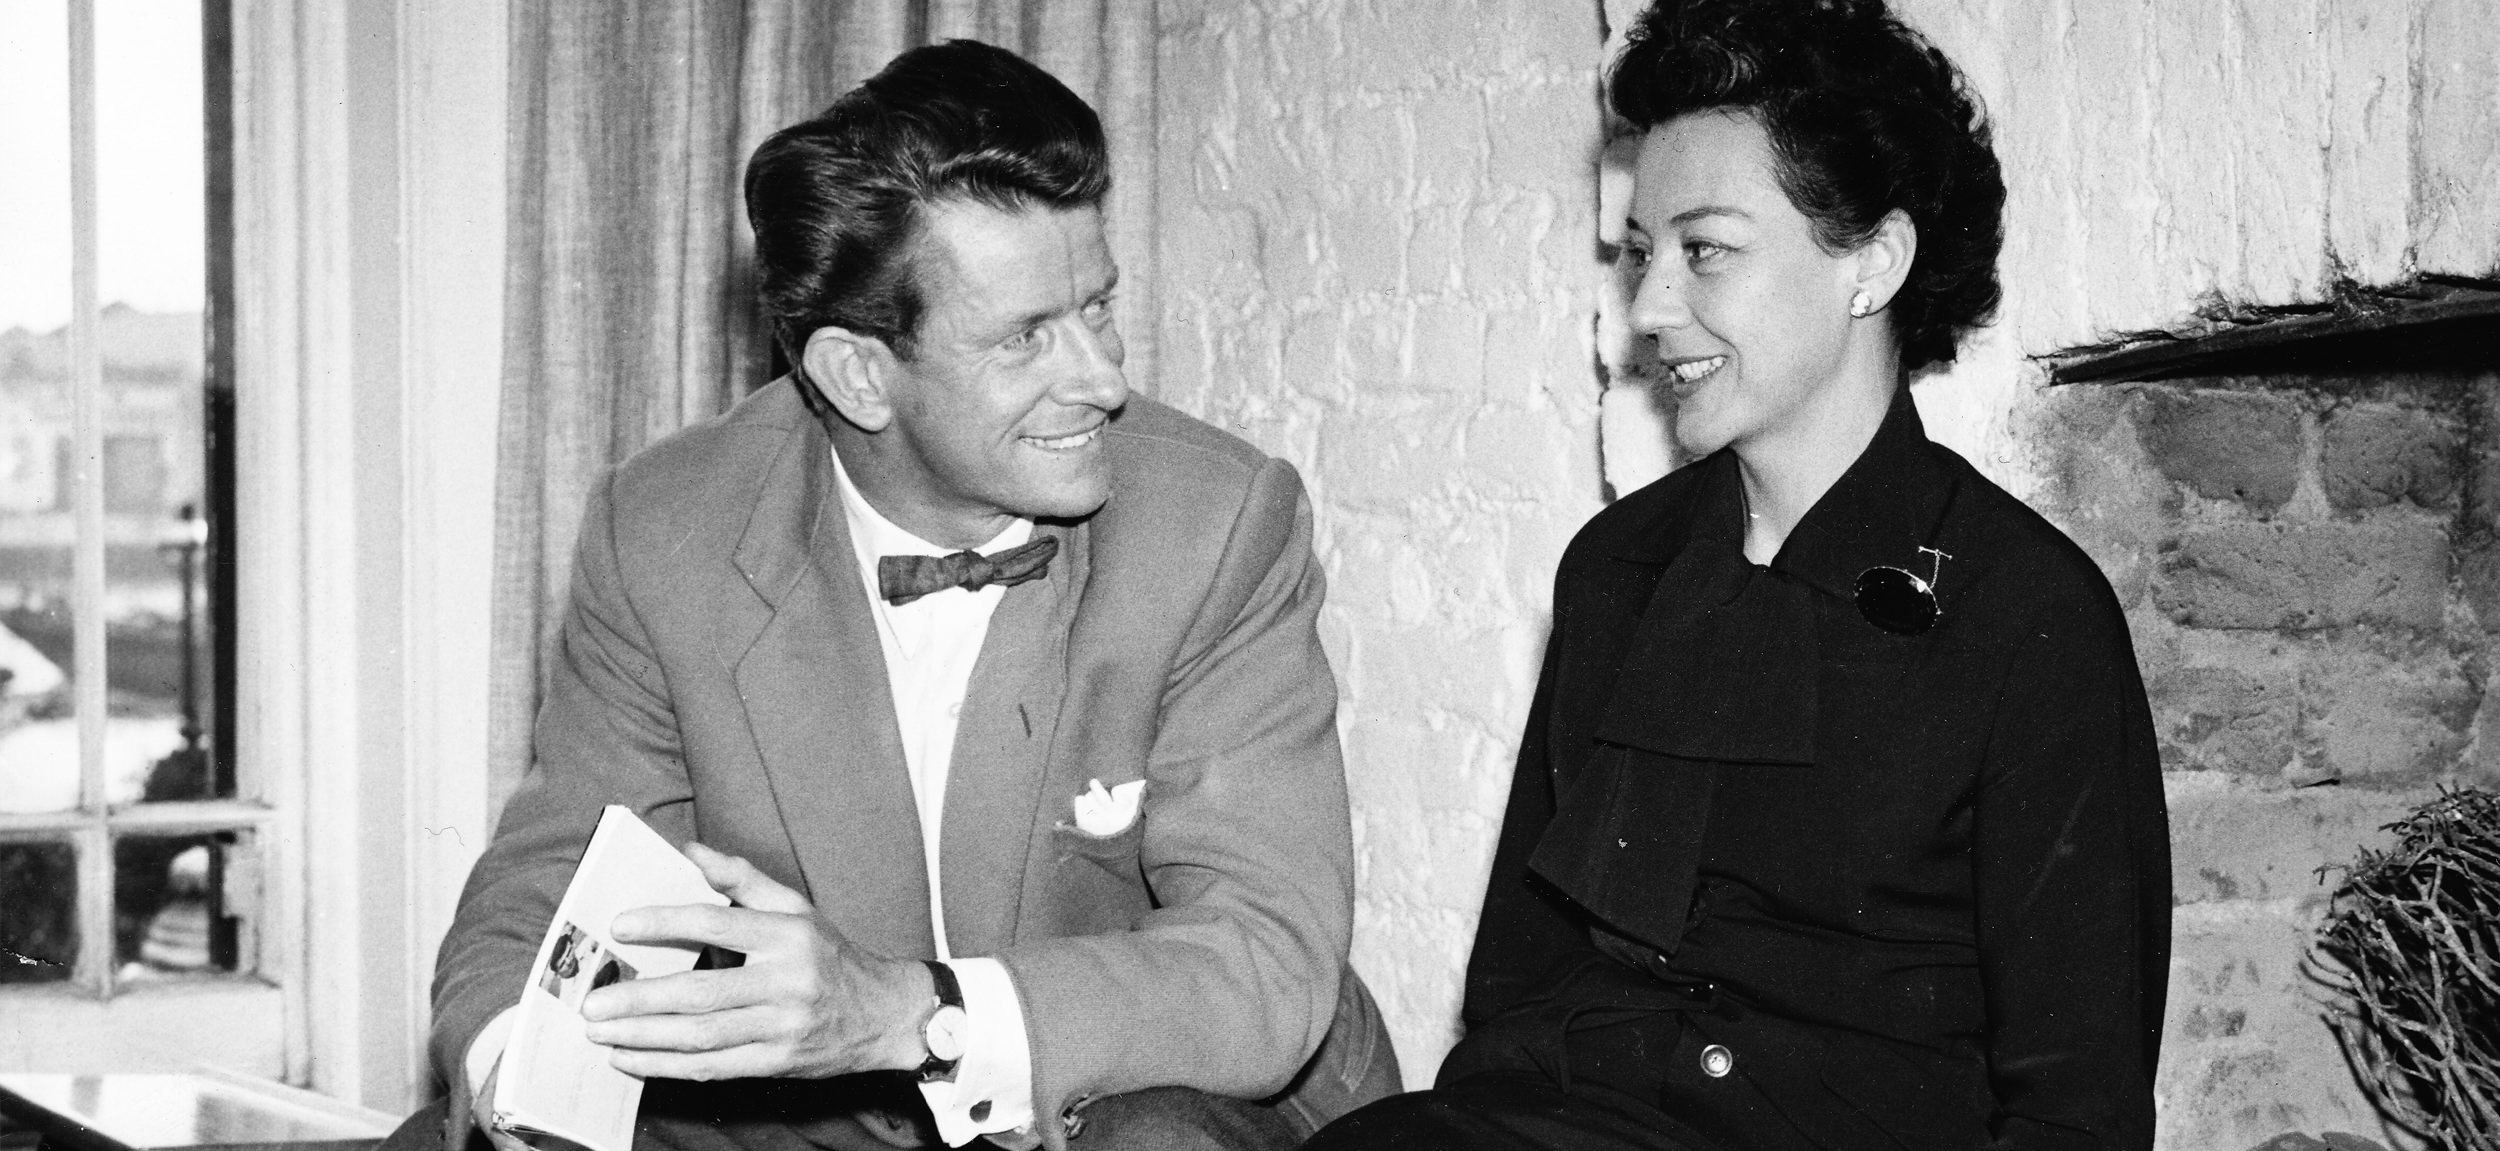 Days in Sussex, 9th April 2016 | Robin & Lucienne Day